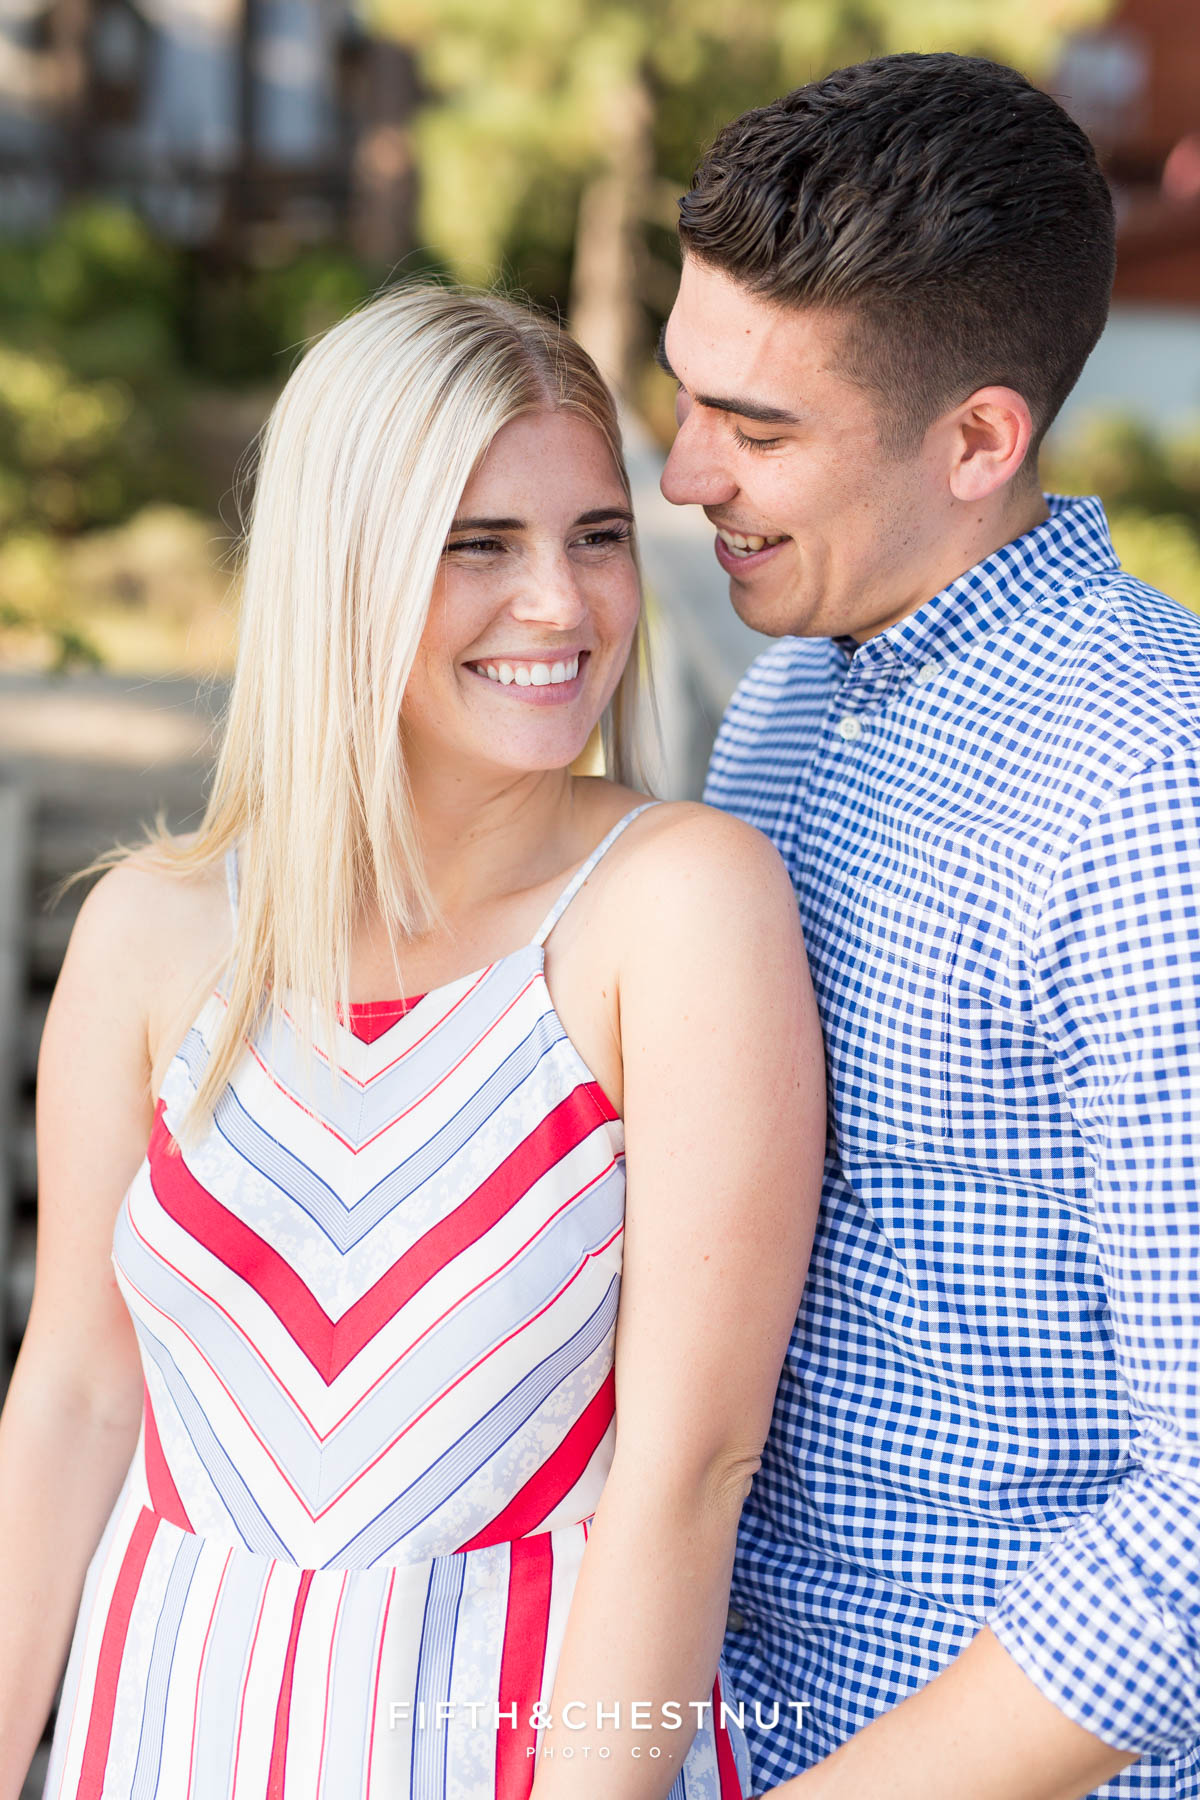 After their Donner Lake Proposal, newly engaged couple smiles and laughs together as they celebrate